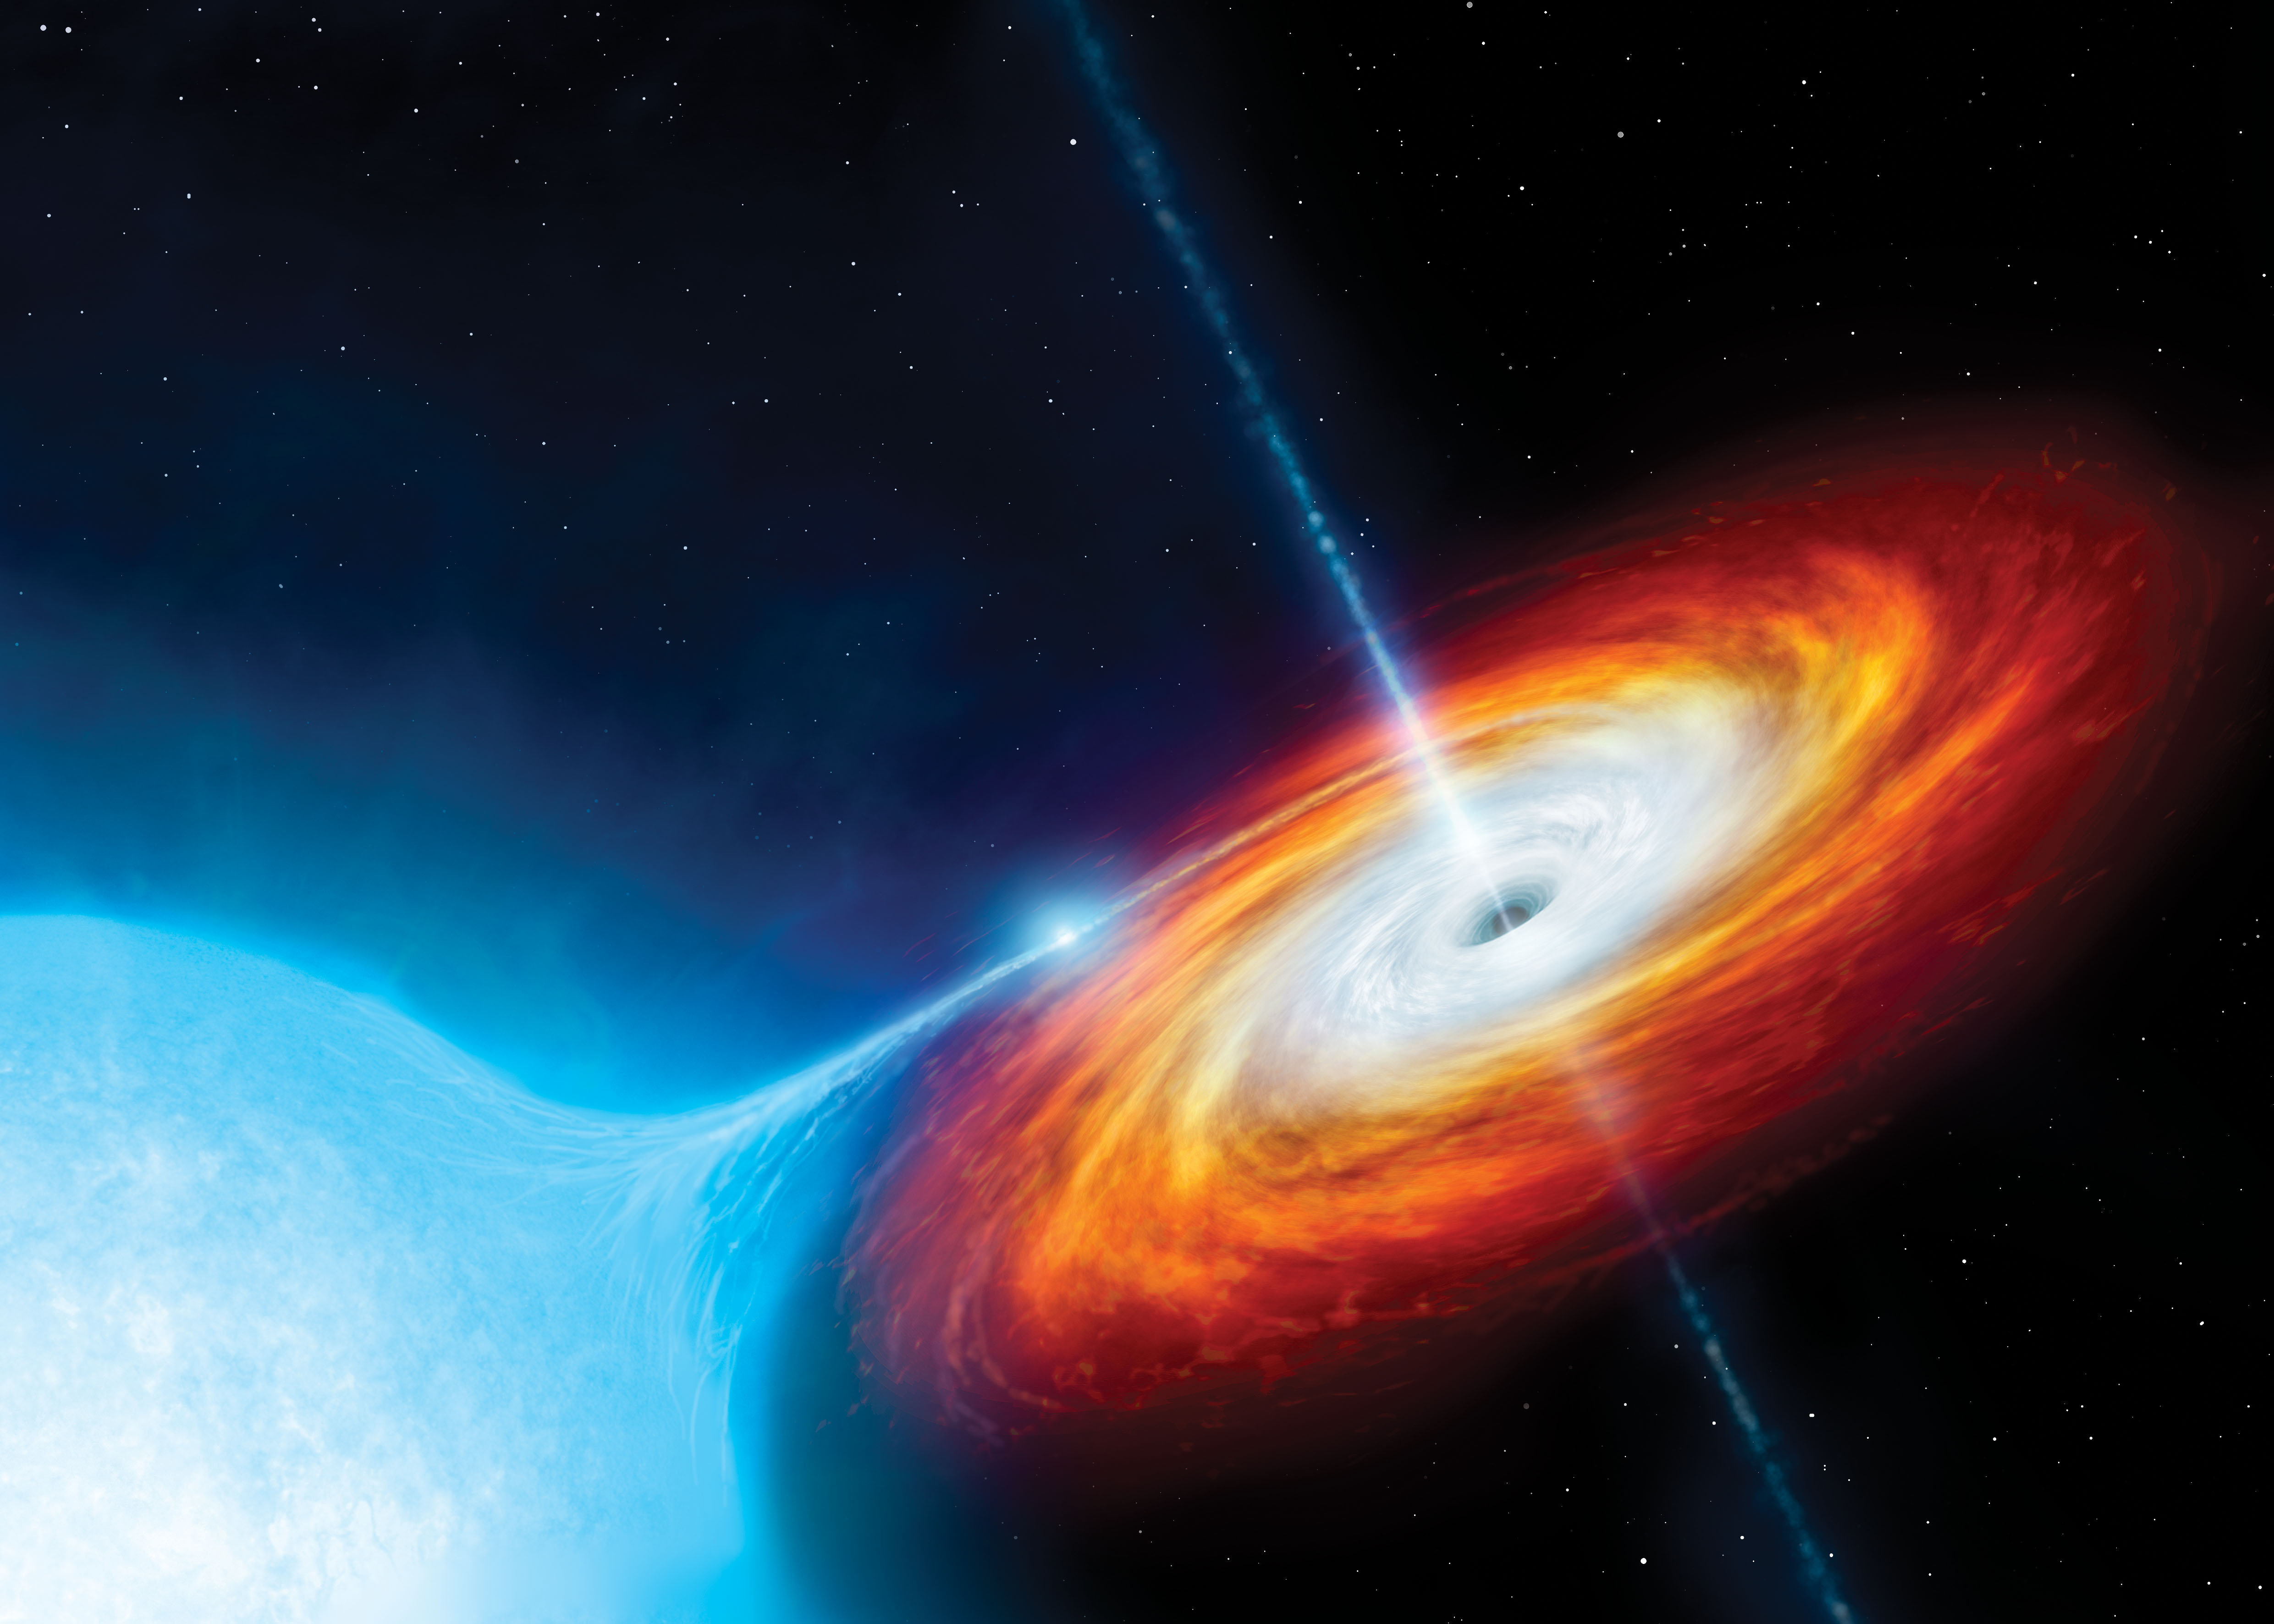 Extreme gravity can tear whole star systems to pieces